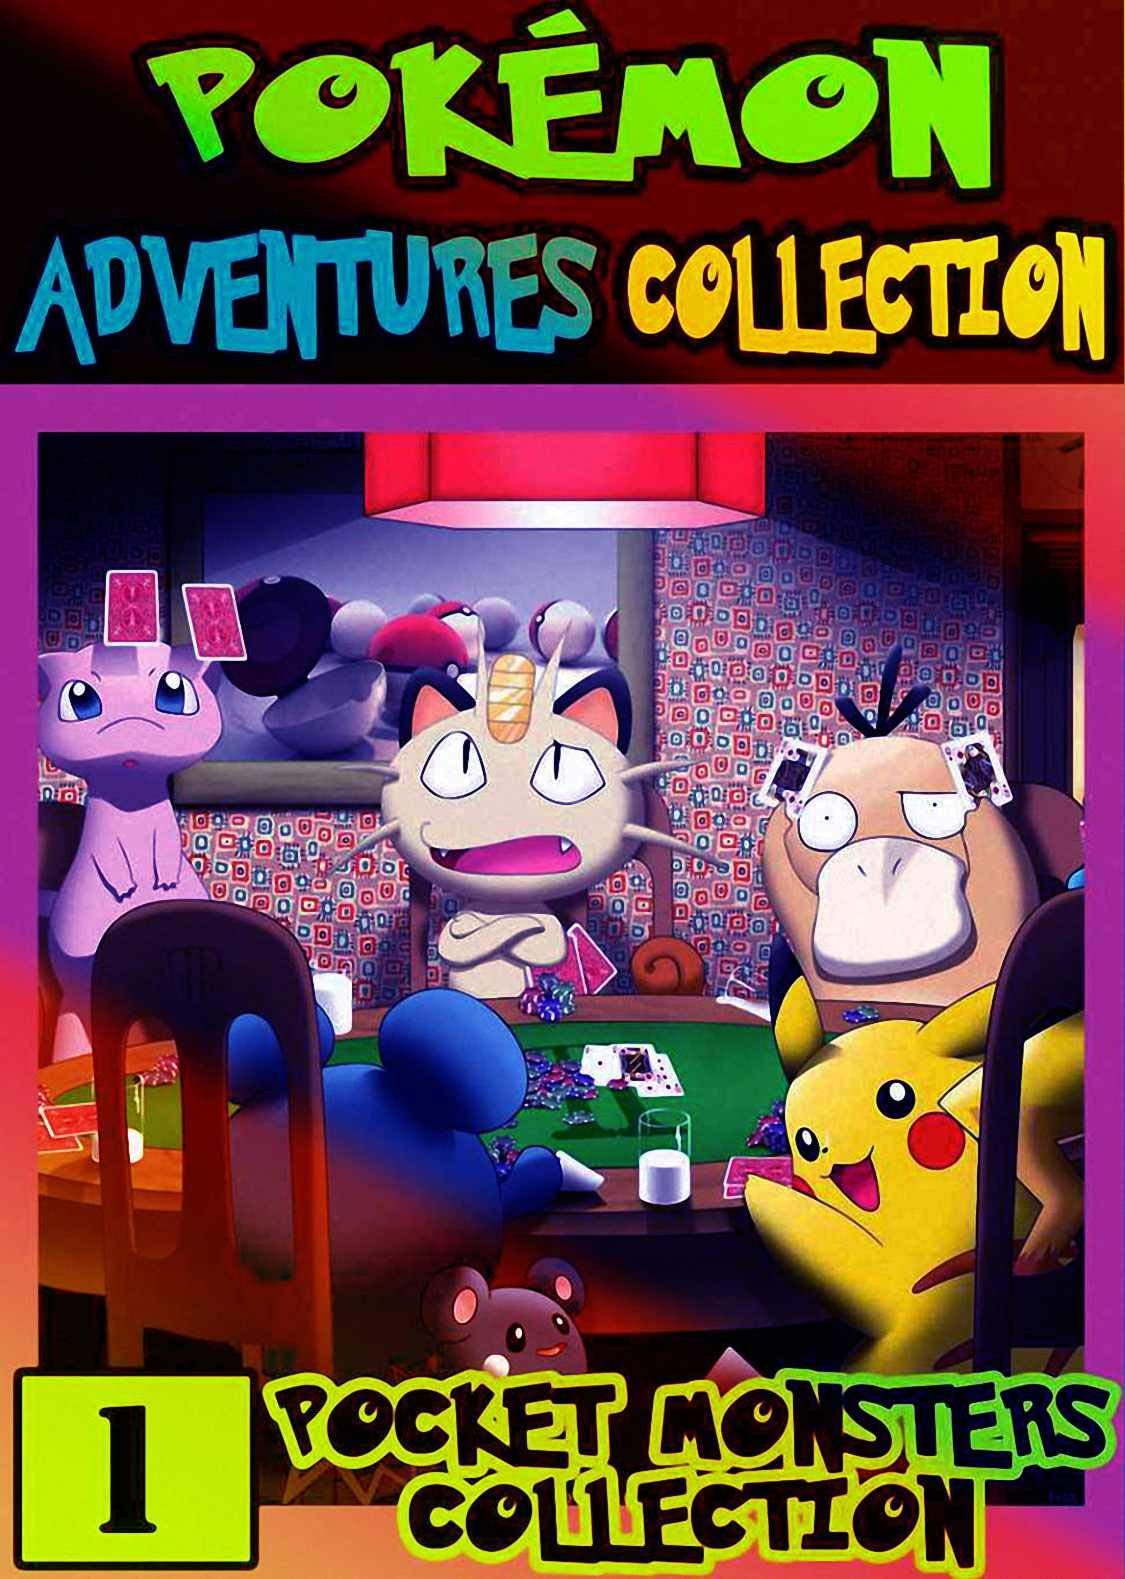 Monsters Collection: Collection Pack 1 - Graphic Novel For Children, Kids Pokemon Manga Pocket Monsters Adventures